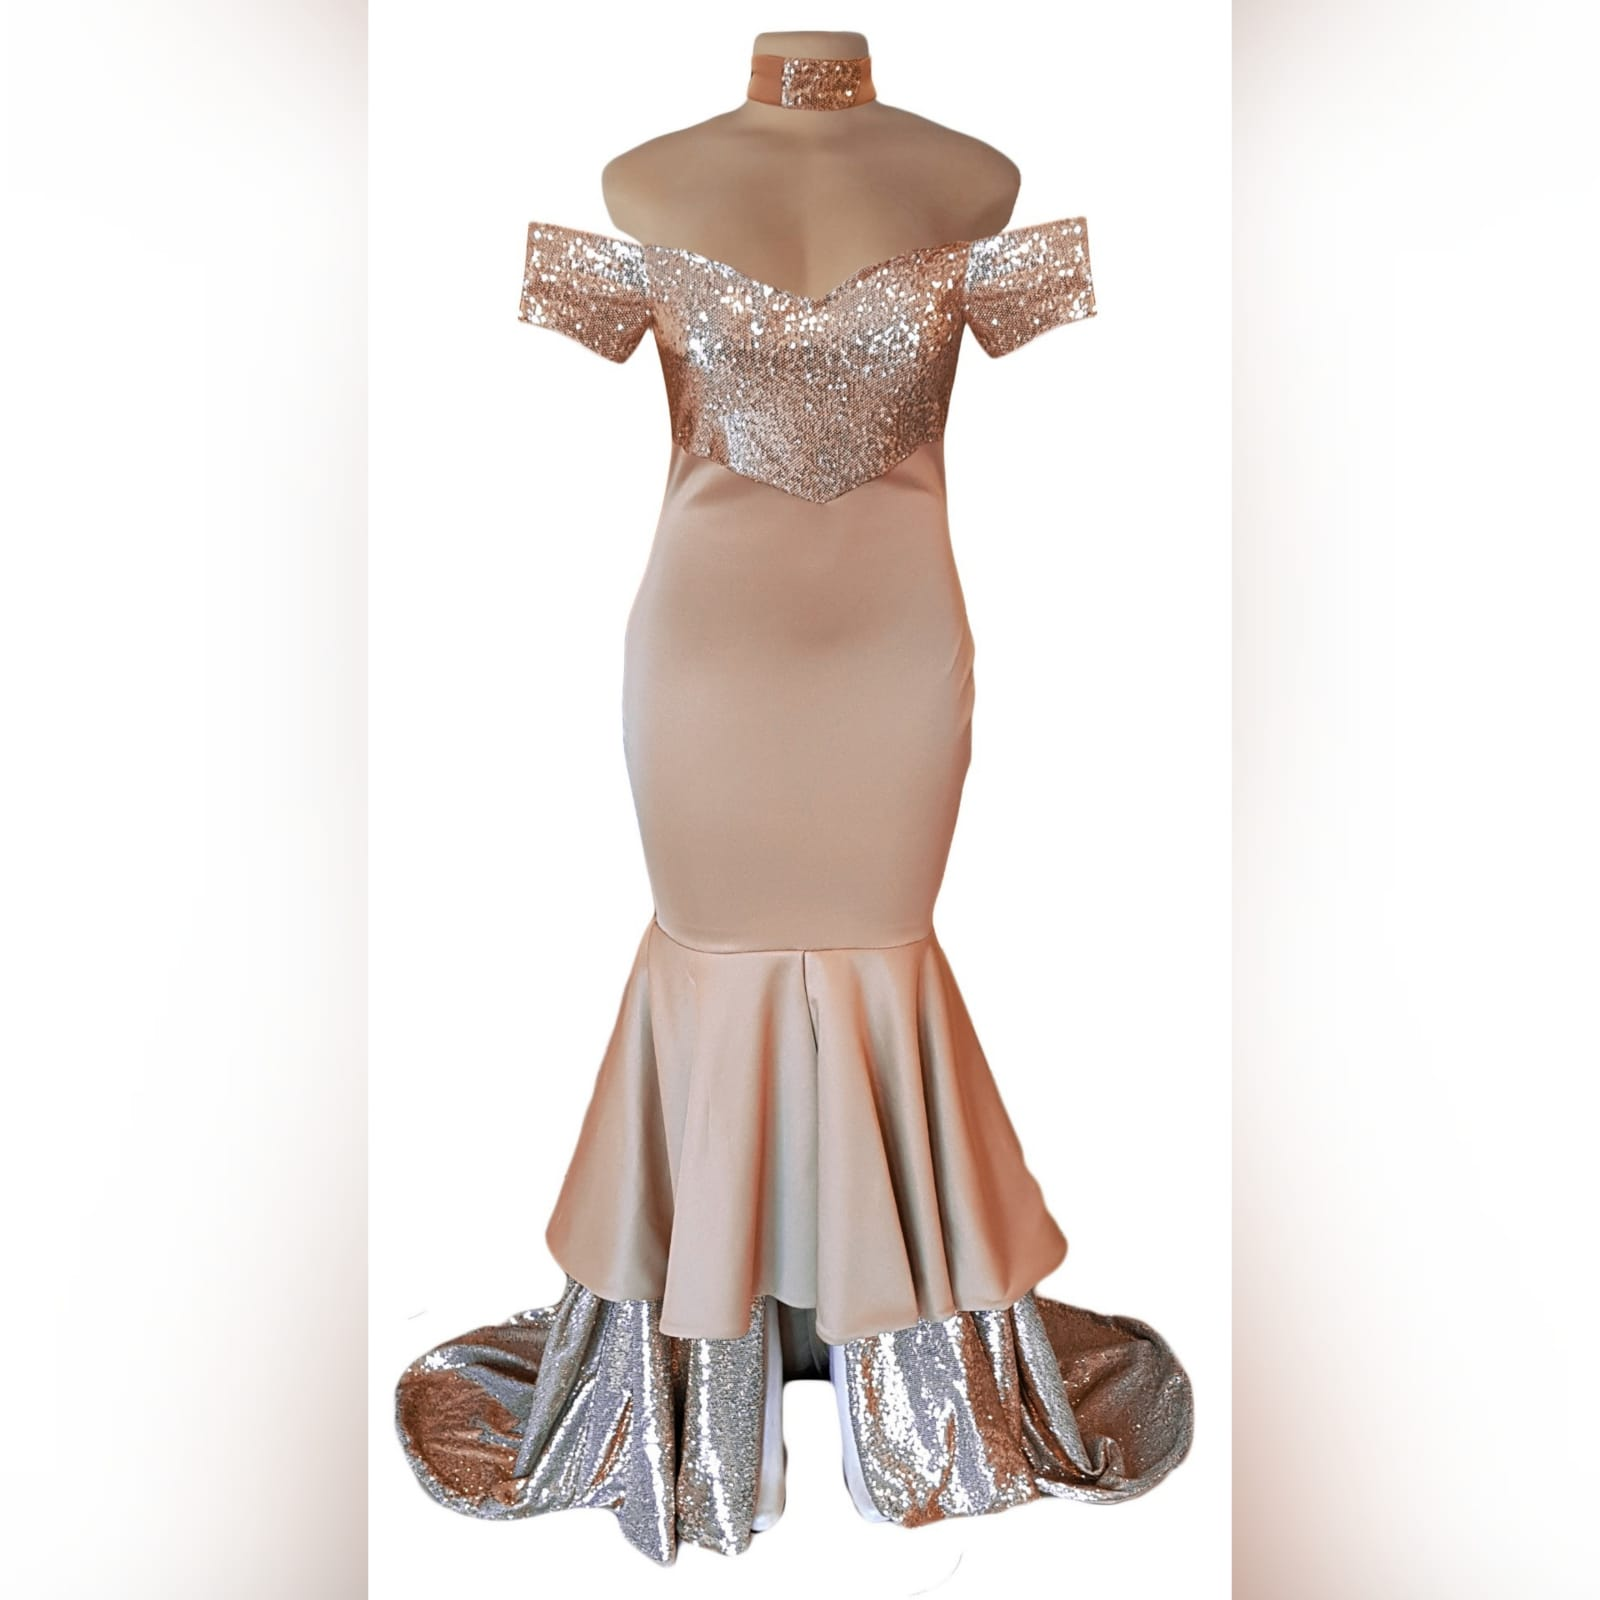 Rose gold 2 tone mermaid prom dress 7 rose gold 2 tone mermaid prom dress, off-shoulder dress with a sweetheart neckline and off-shoulder short sleeves. Double layer from knee down, with sequins, creating a train with a slit int the front middle. Comes with a matching choker.